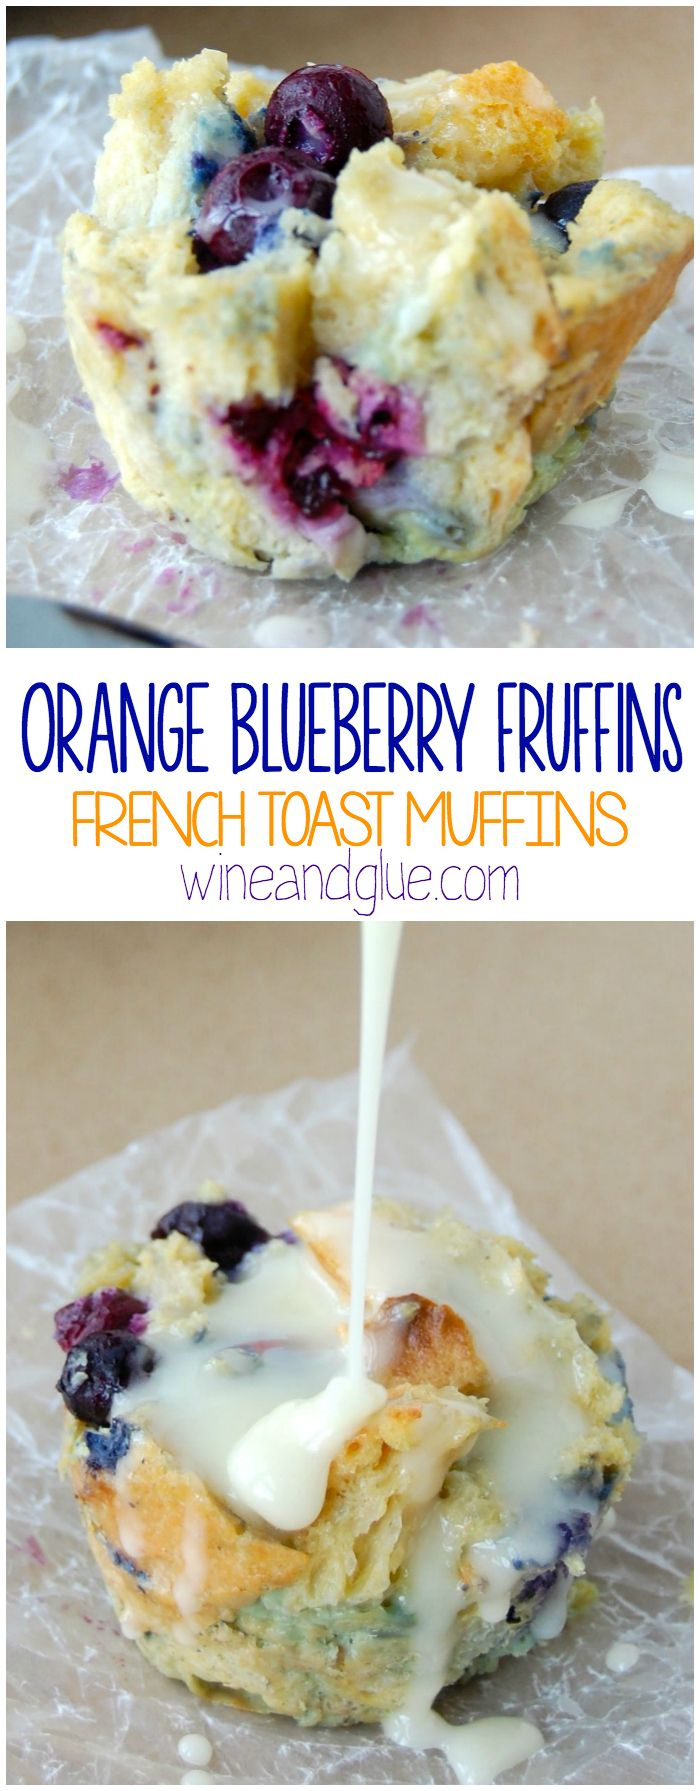 Orange Blueberry Fruffins {French Toast Muffins}   The delicious flavors of orange & blueberry conveniently packaged in a muffin form, but made from french toast!